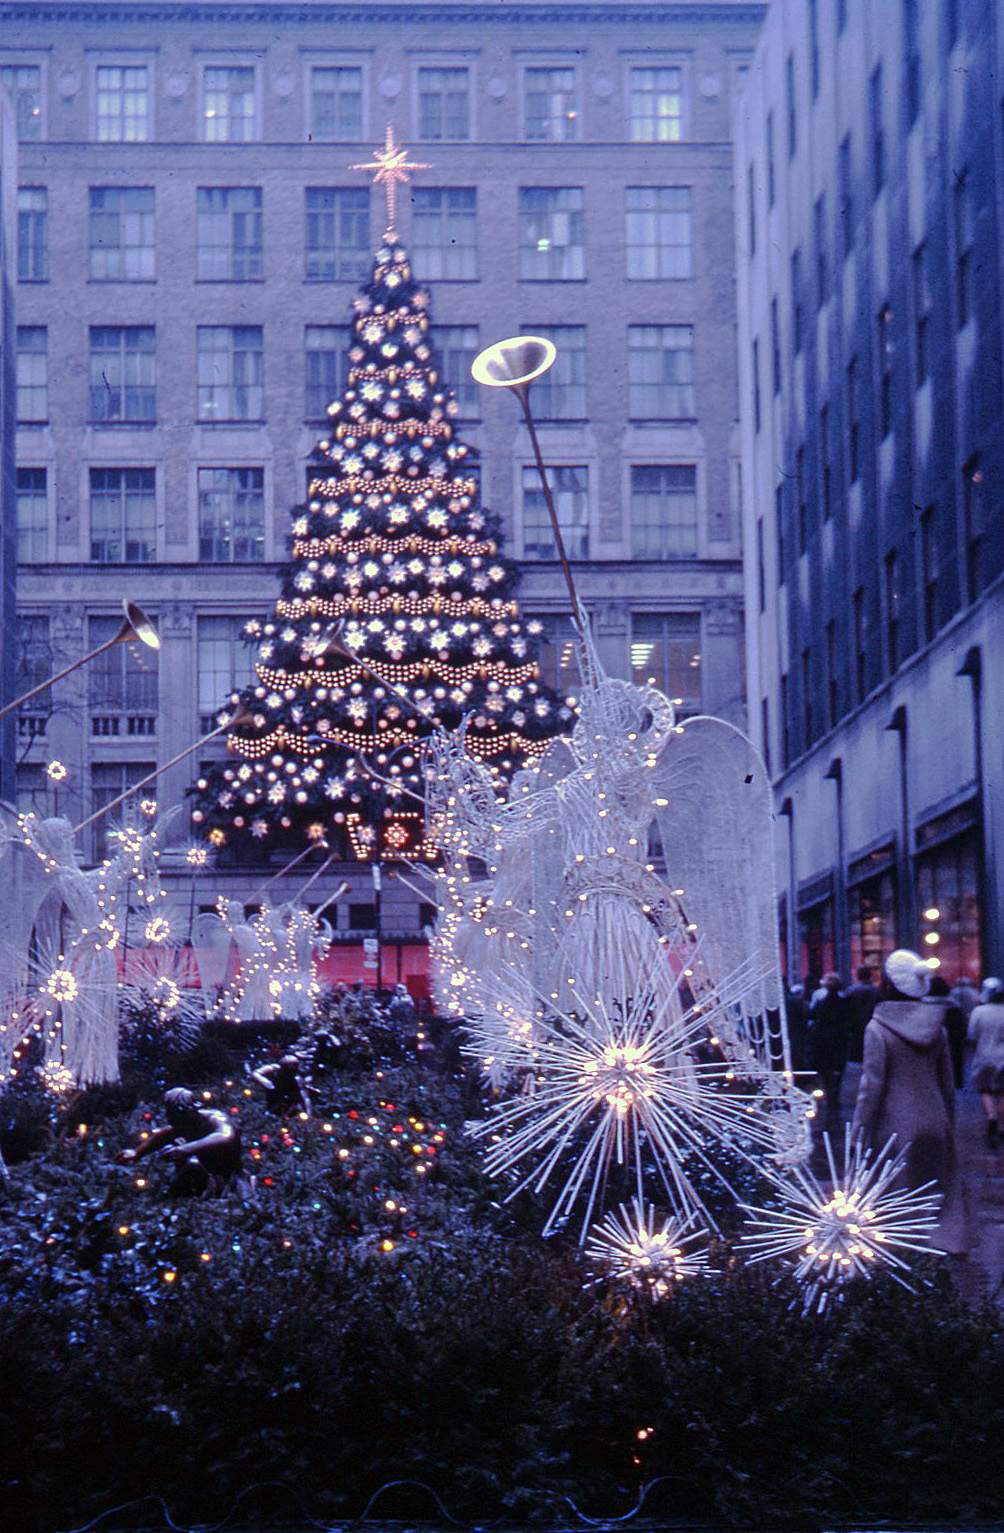 FileRockefeller Center Christmas Tree New York 1970